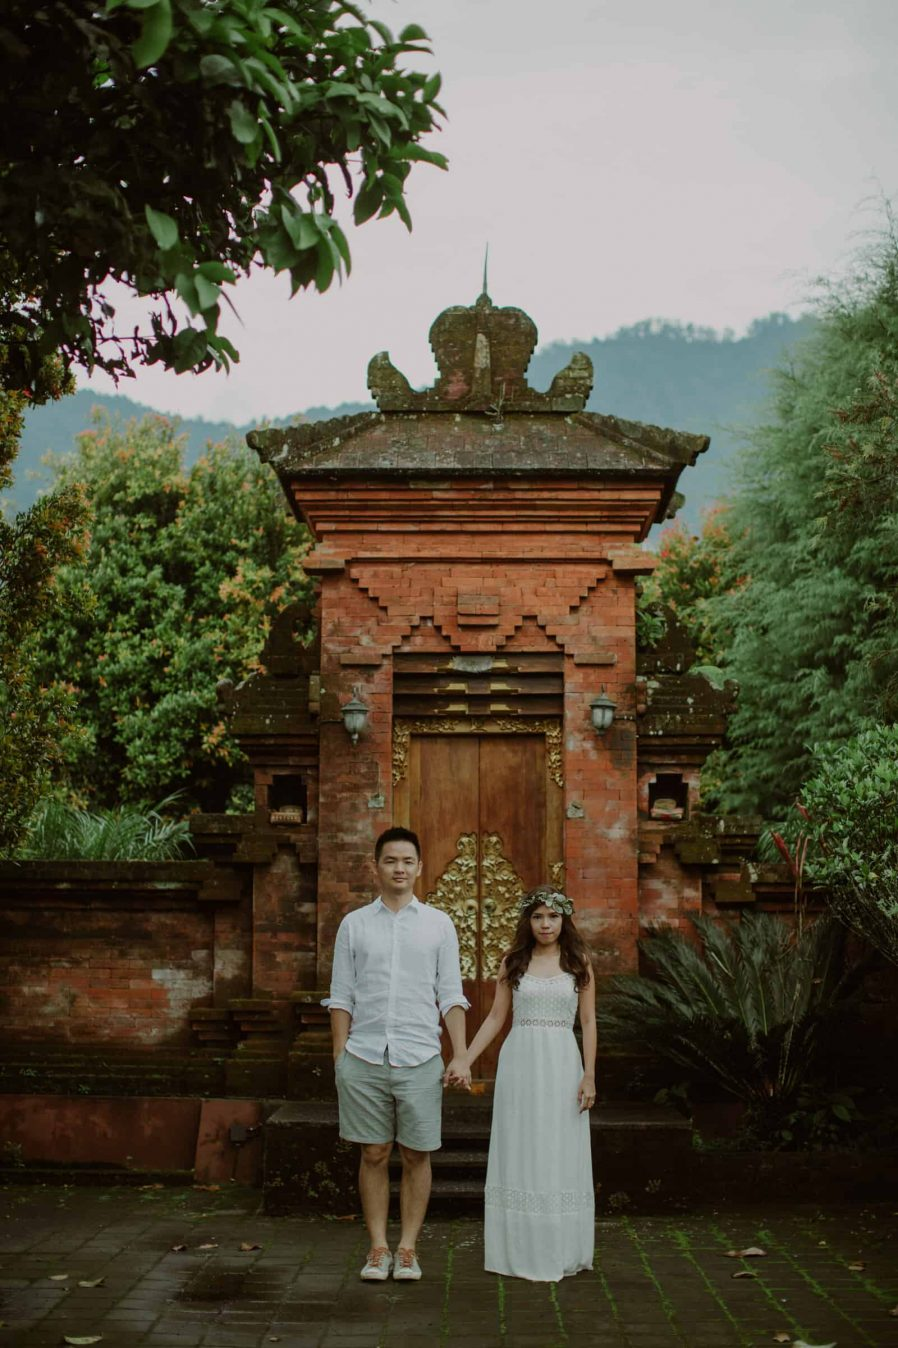 cliff choong destination portrait and wedding photographer malaysia kuala lumpur bali adventure sea waterfall prewedding shots bride and groom boat on the waterULUN DANU BERATAN TEMPLE AND LAKE BERATAN